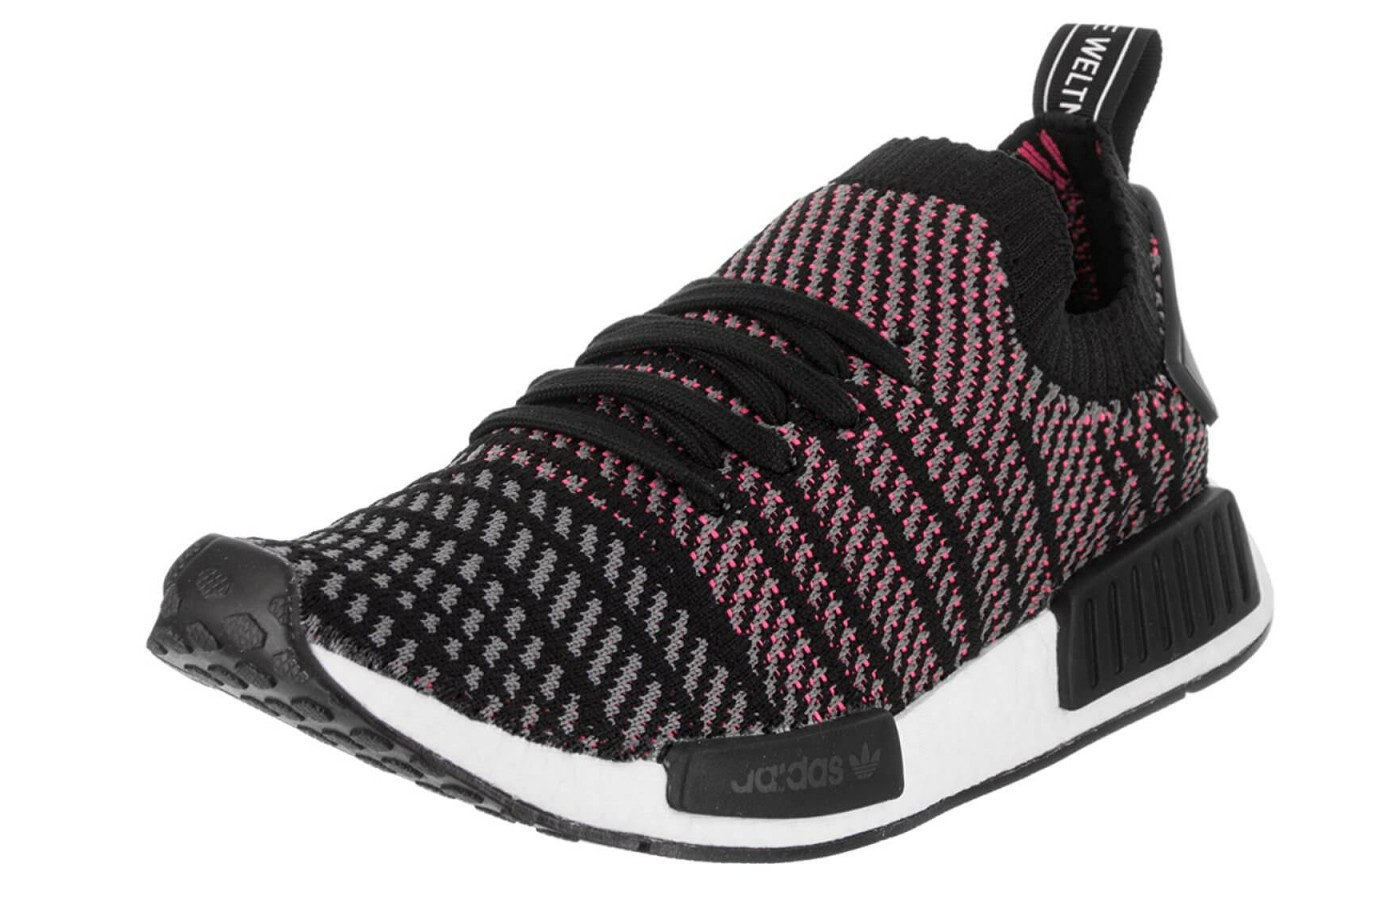 60d9148baf405 The Adidas NMD R1 Stlt Primeknit features a Primeknit upper ...